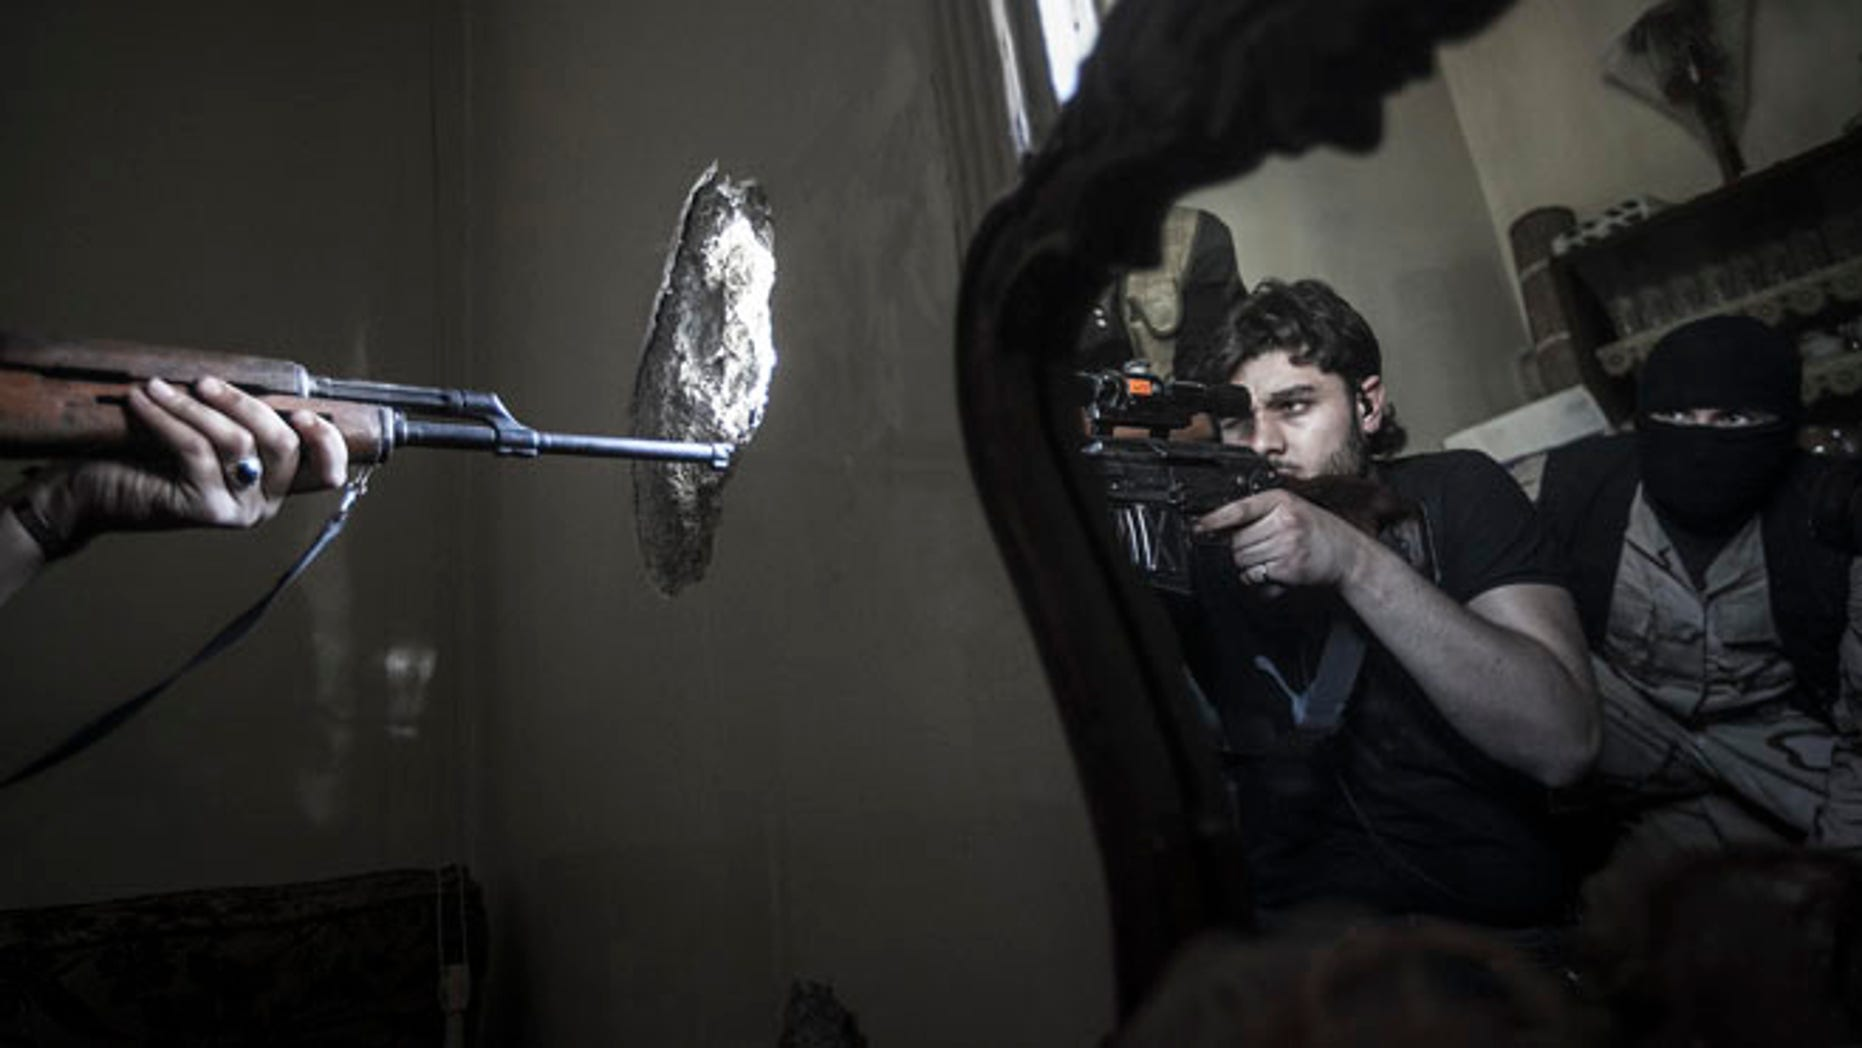 FILE 2012: A rebel sniper aims at a Syrian army position, seen with another rebel fighter reflected in a mirror, in a residential building in the Jedida district of Aleppo, Syria.